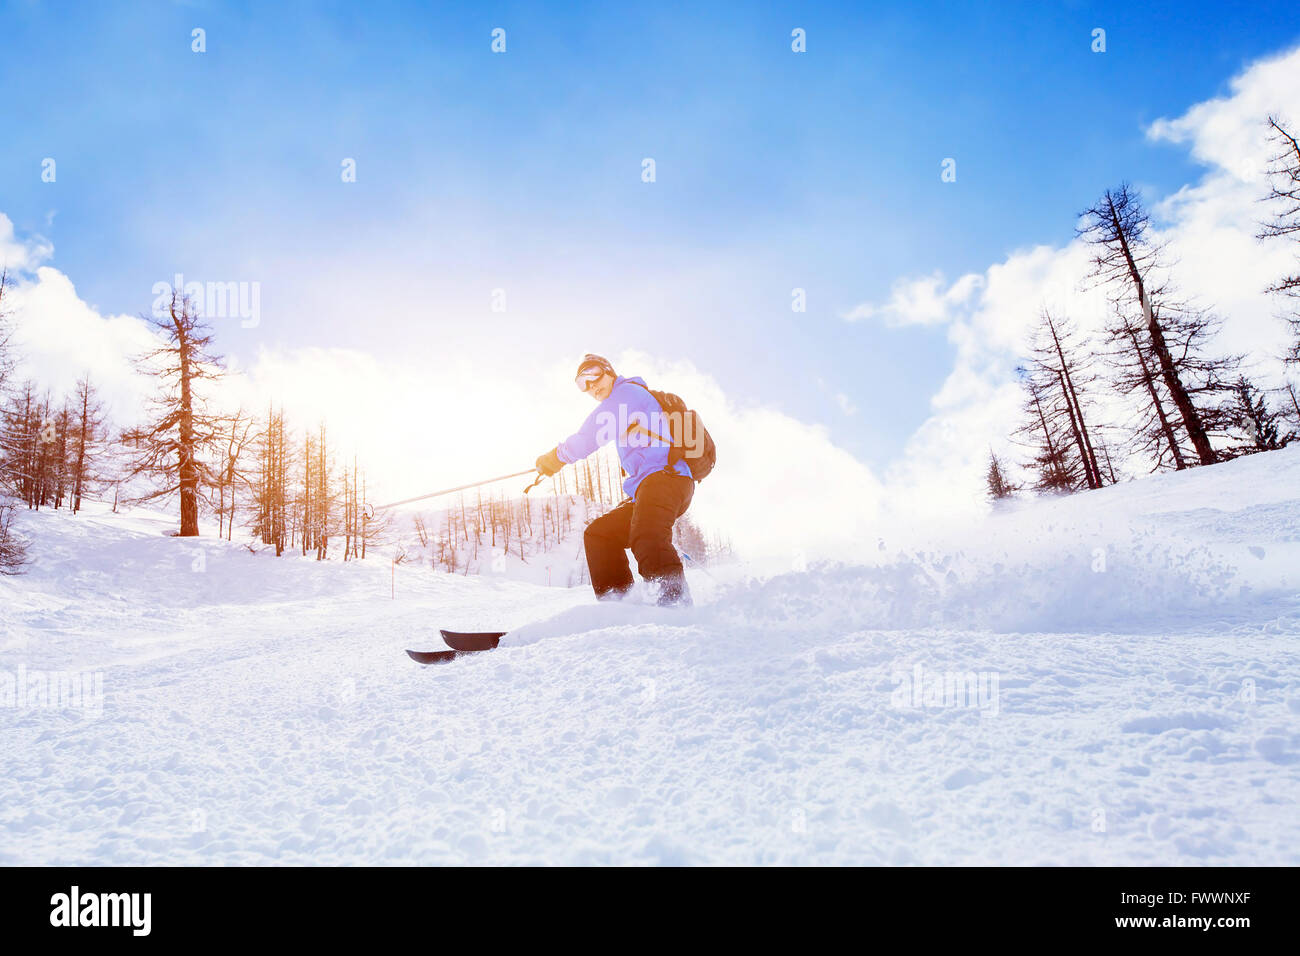 skiing downhill in winter mountains Stock Photo